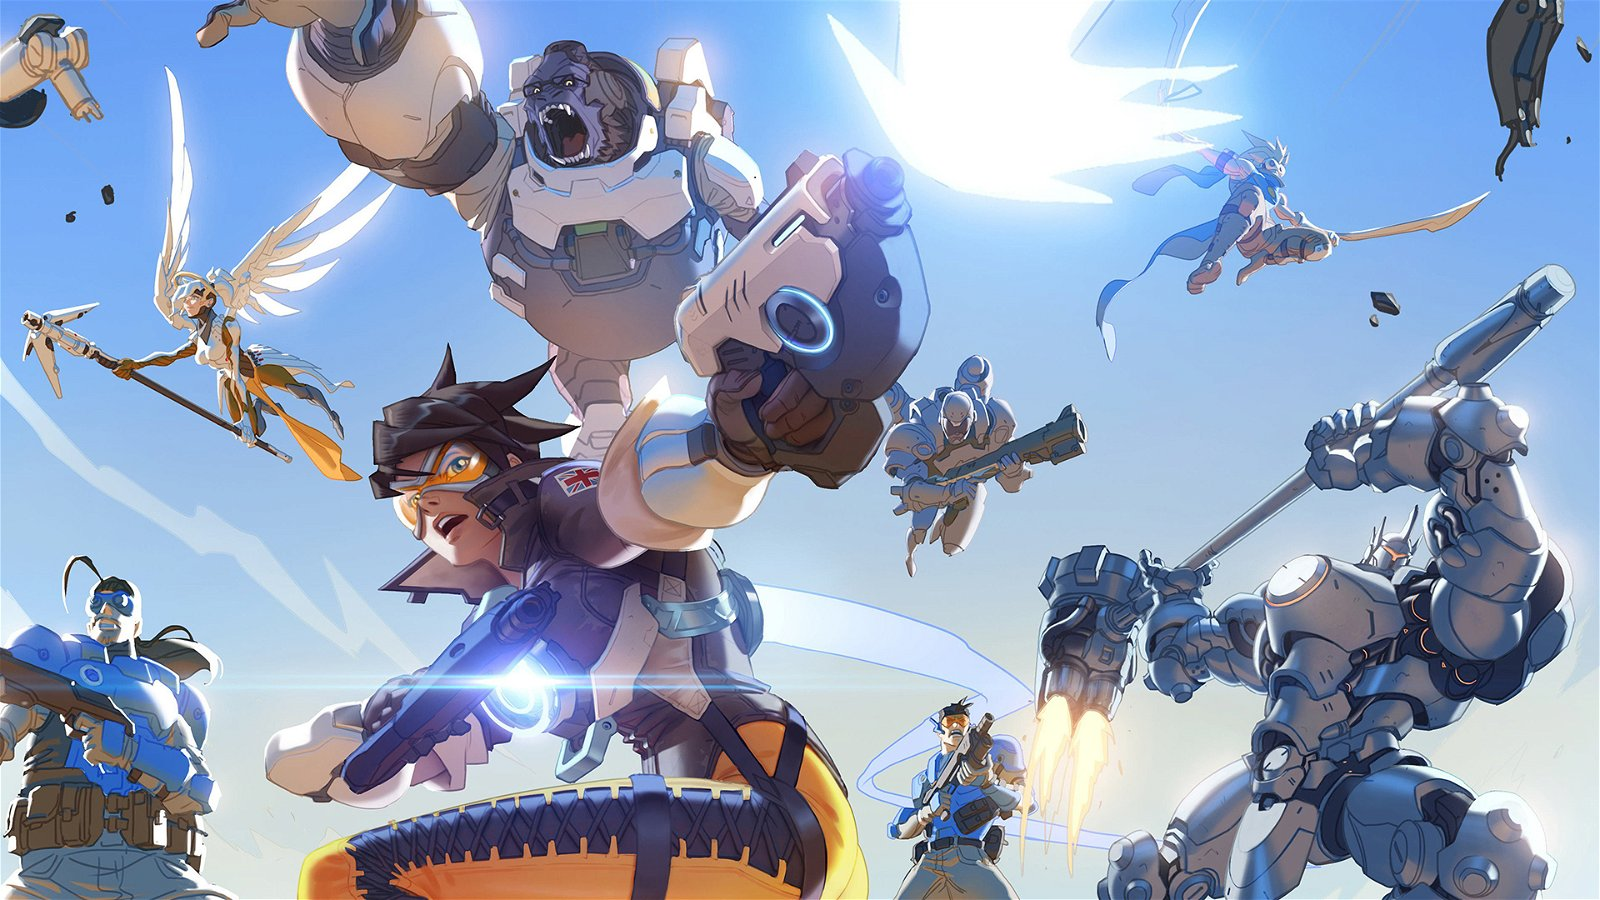 Overwatch Preview - The Next Great Class-Based Shooter 1